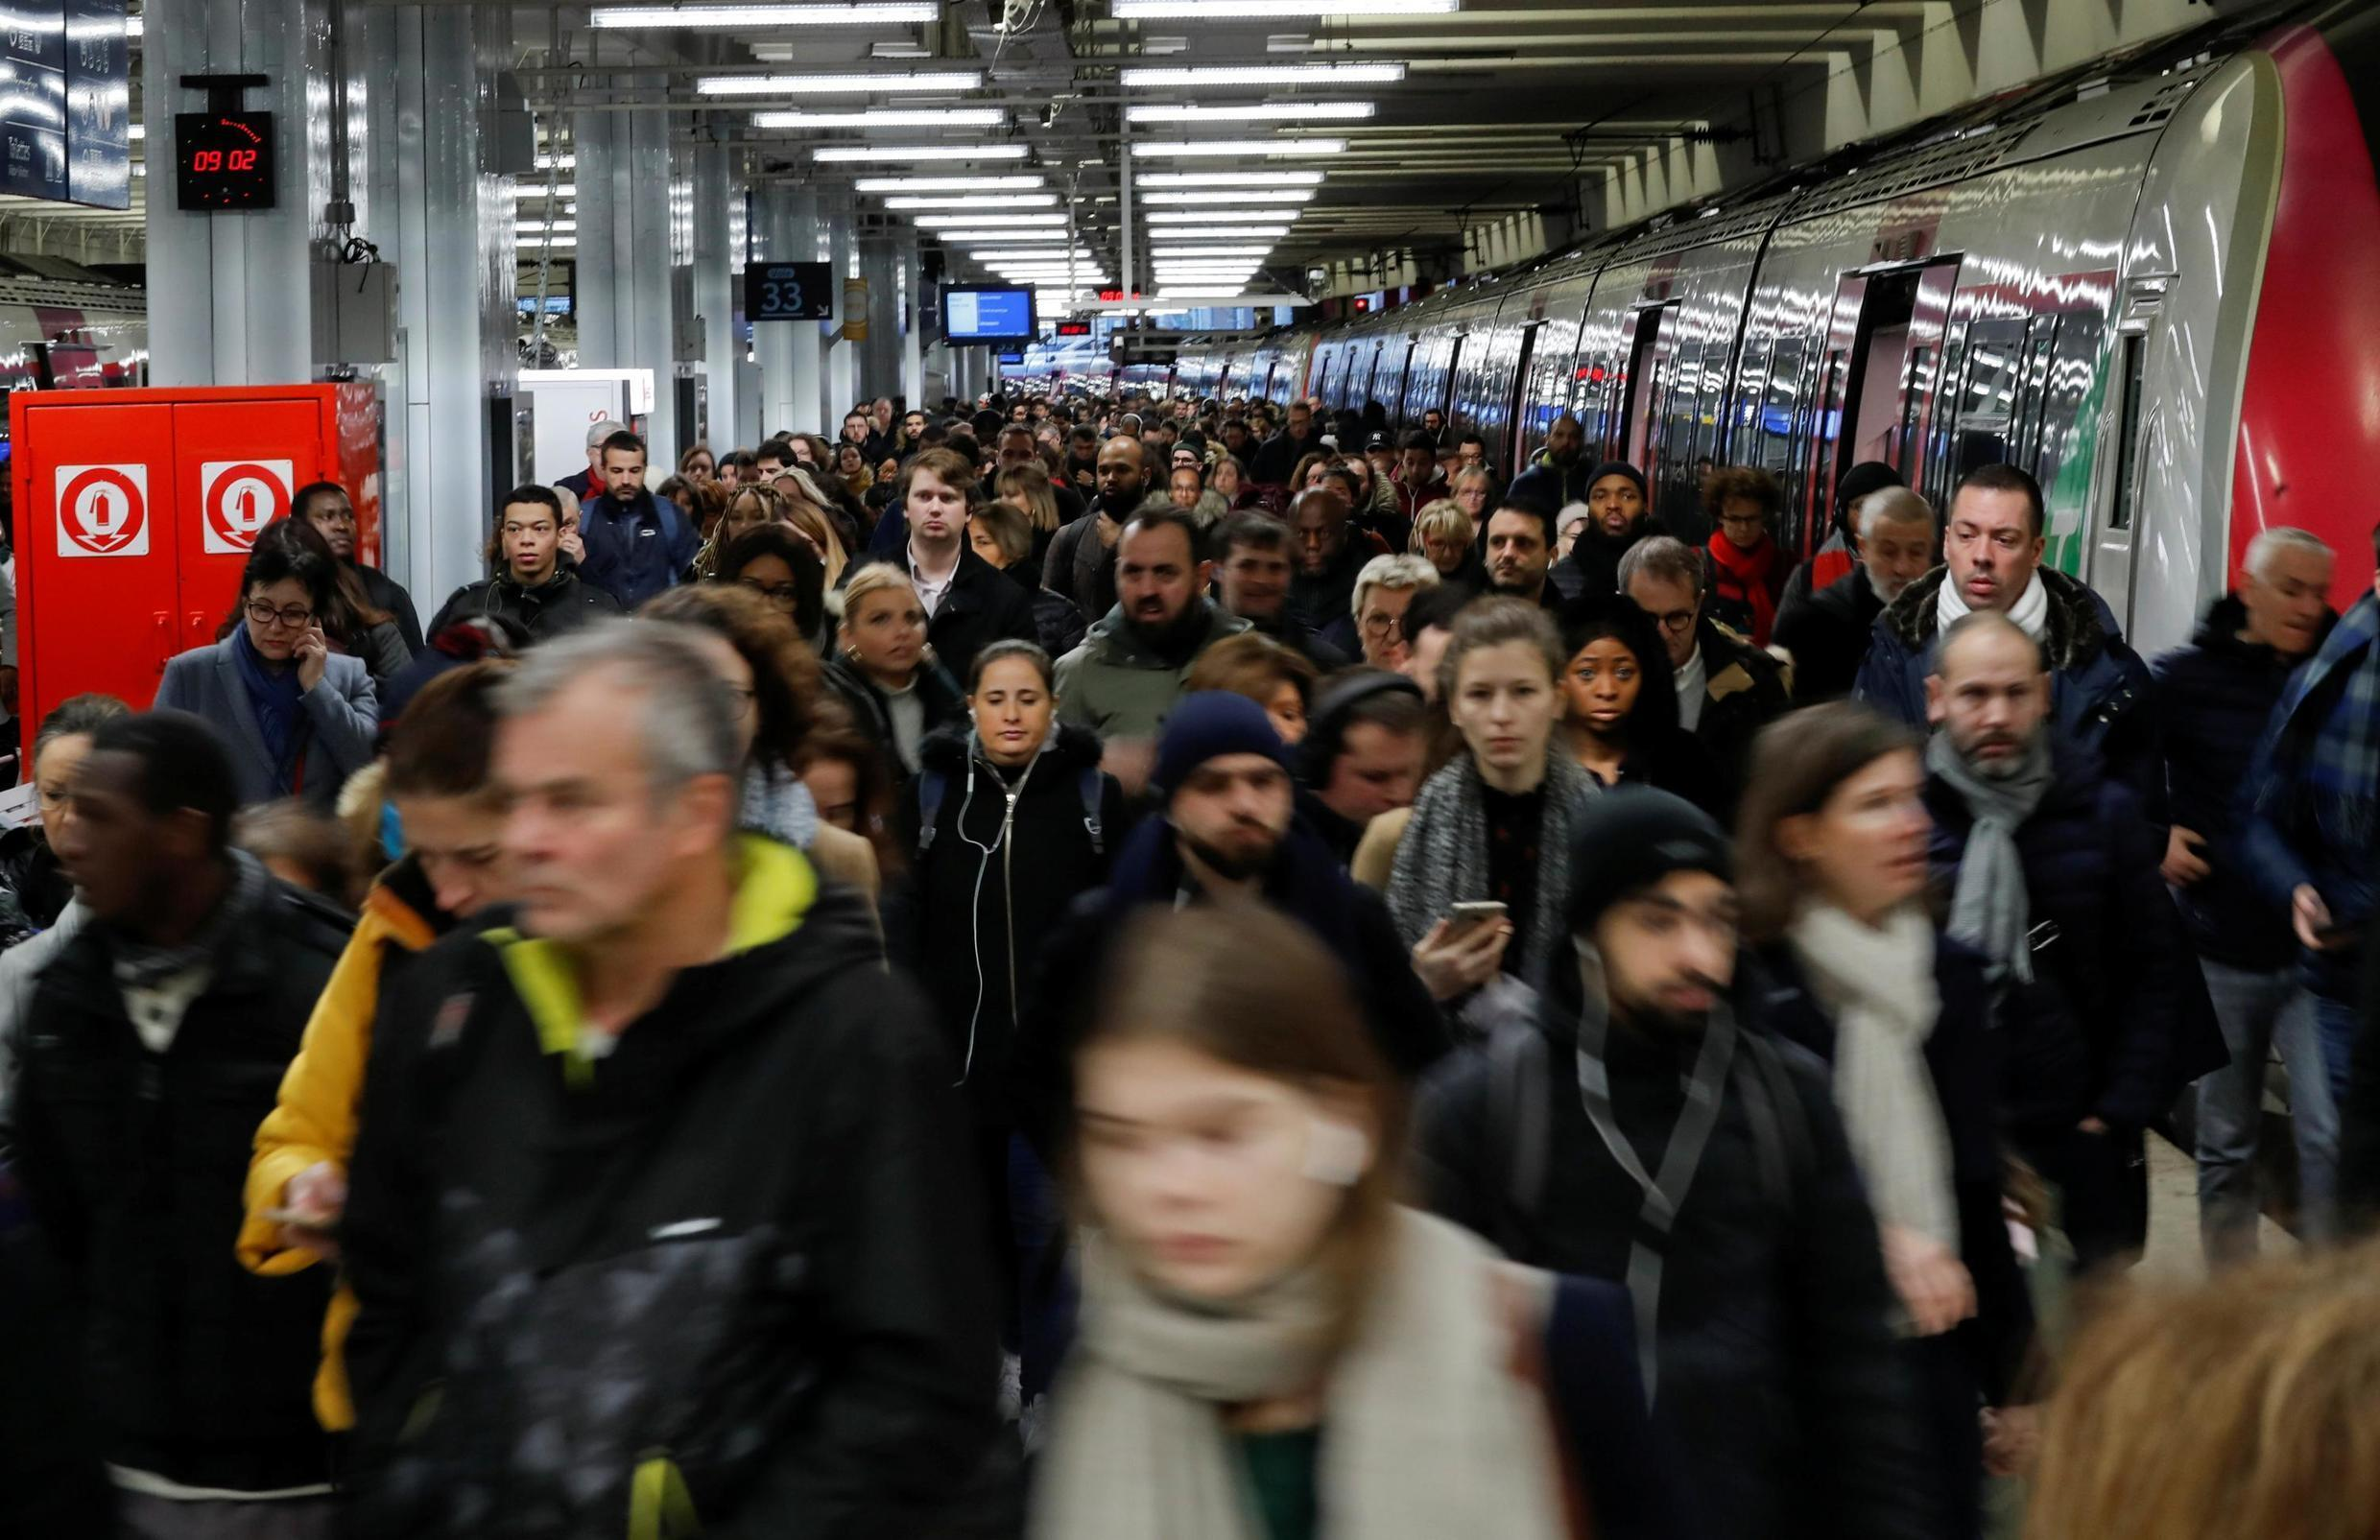 Commuters walk on a platform at Gare du Nord railway station after 42 days of strike by all unions of the Paris transport network (RATP) and French SNCF workers, Paris, January 15, 2020.